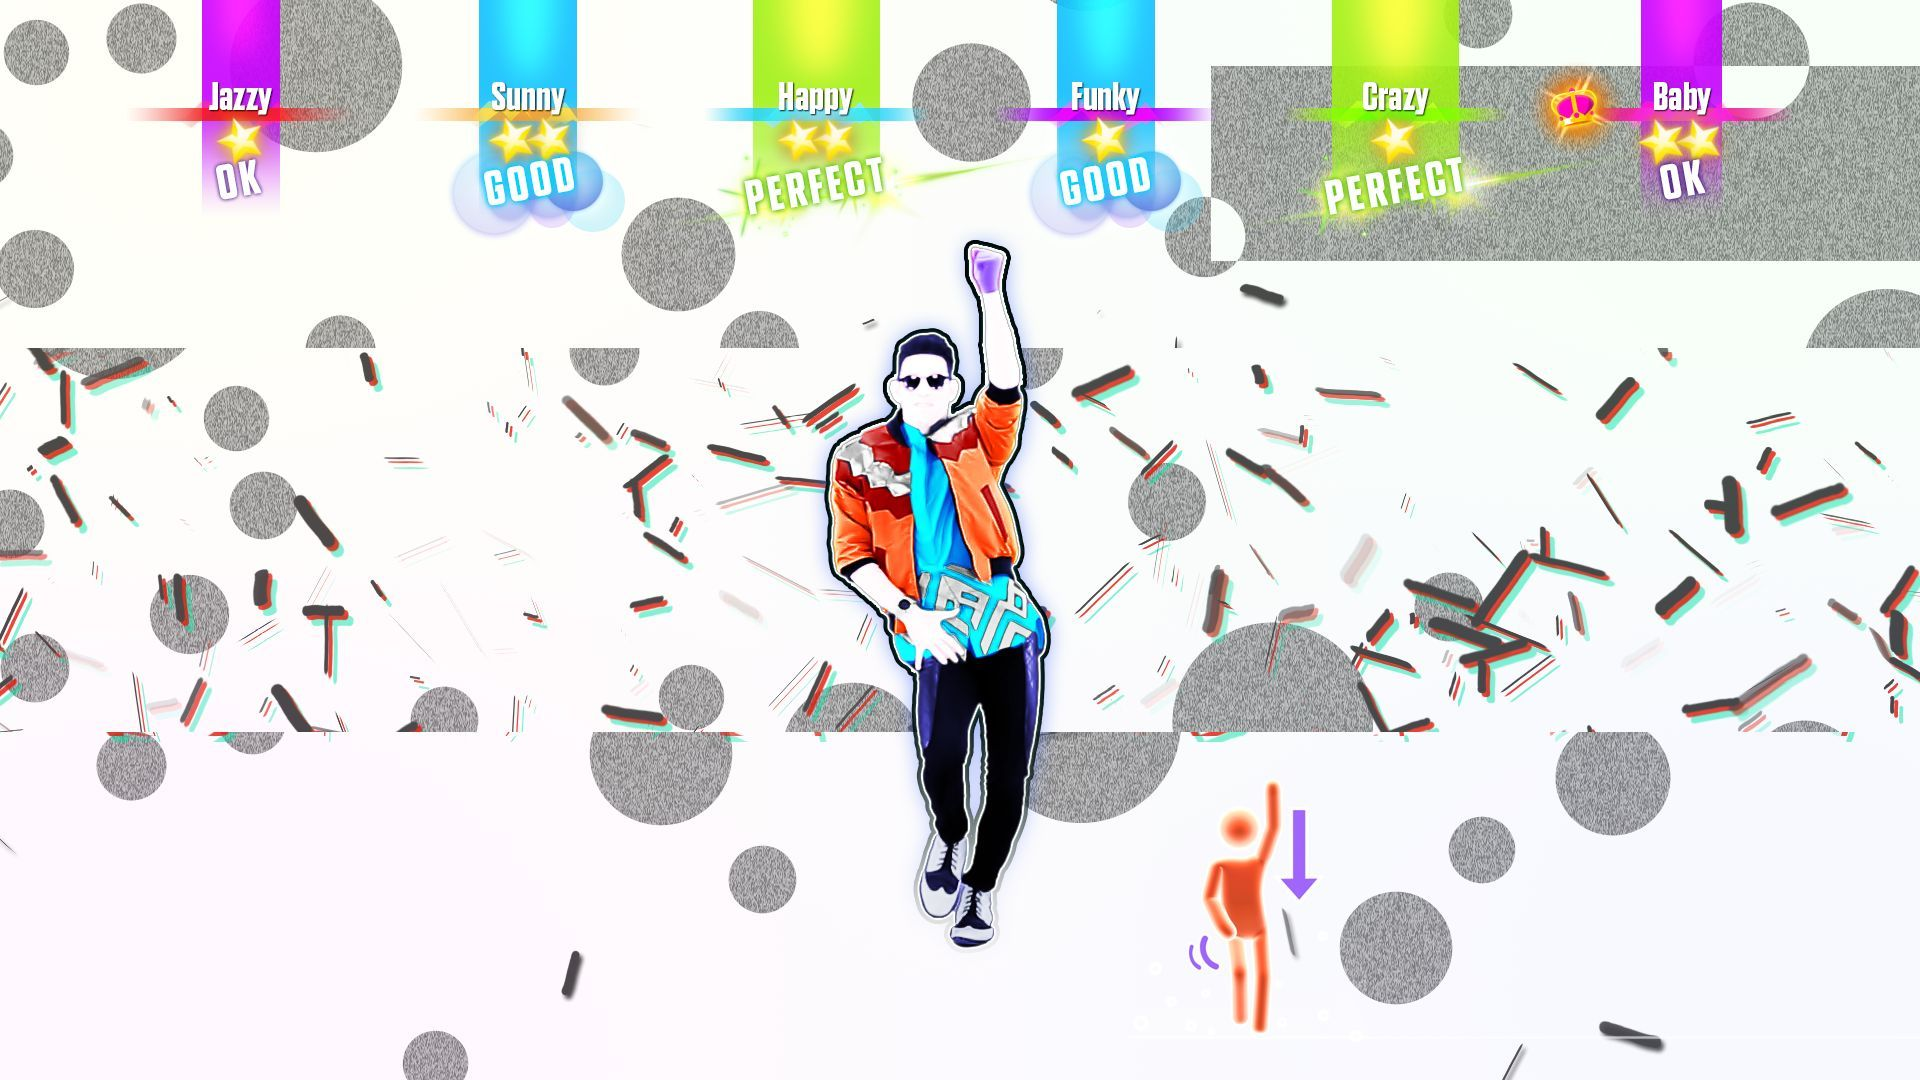 Just Dance 2017 (Xbox One) - 11